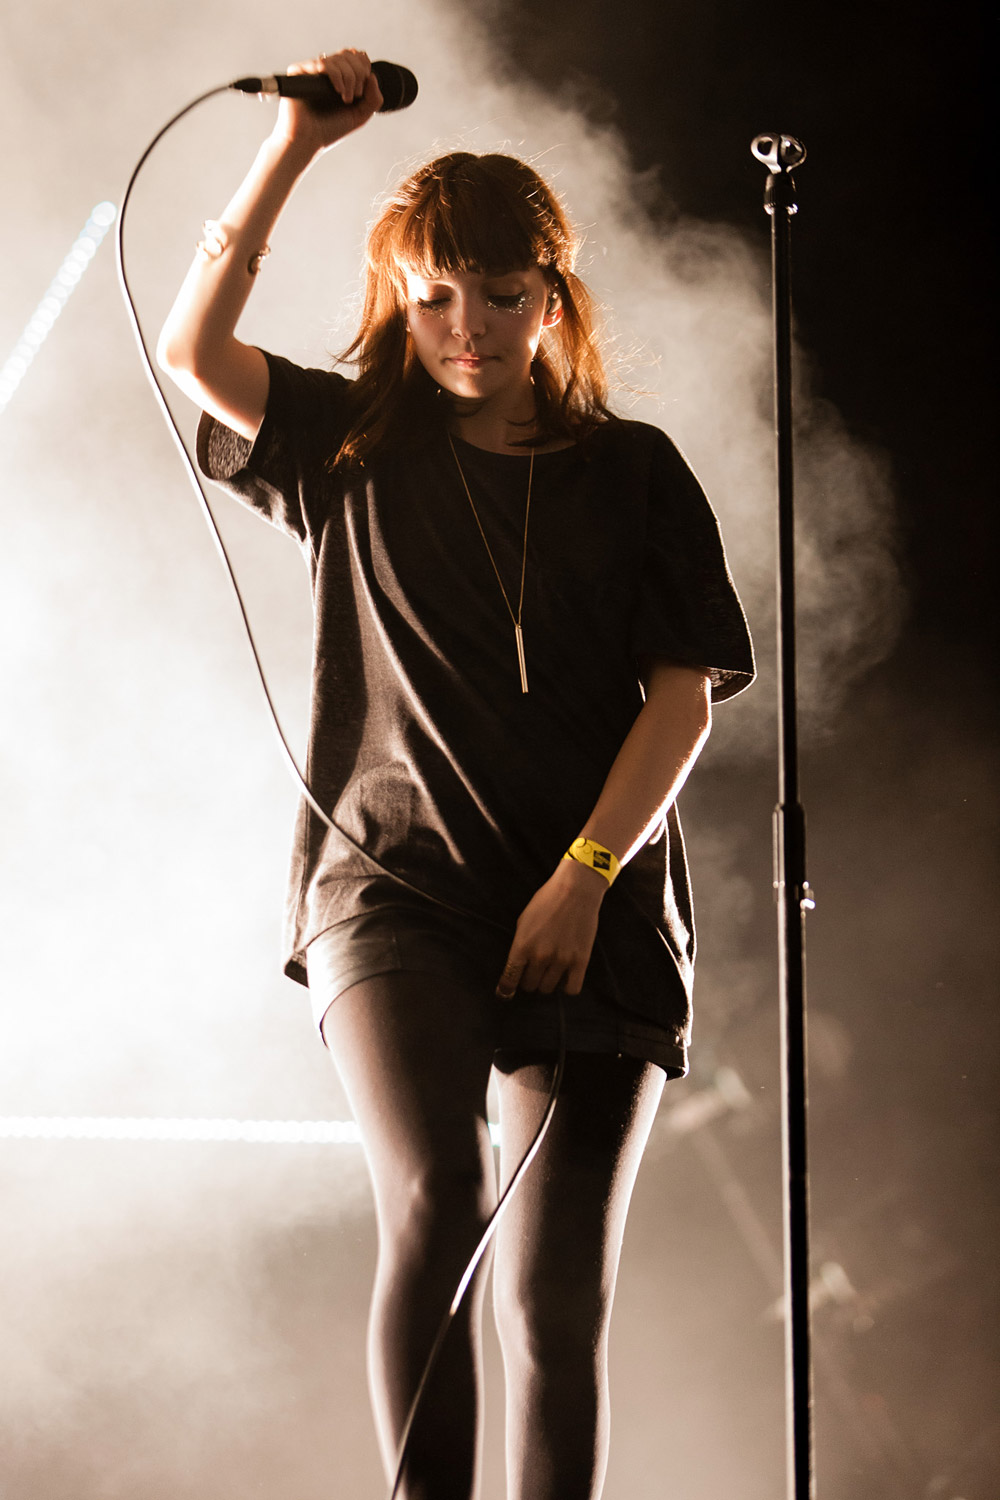 Chvrches @ Somerset House, London 17/07/14